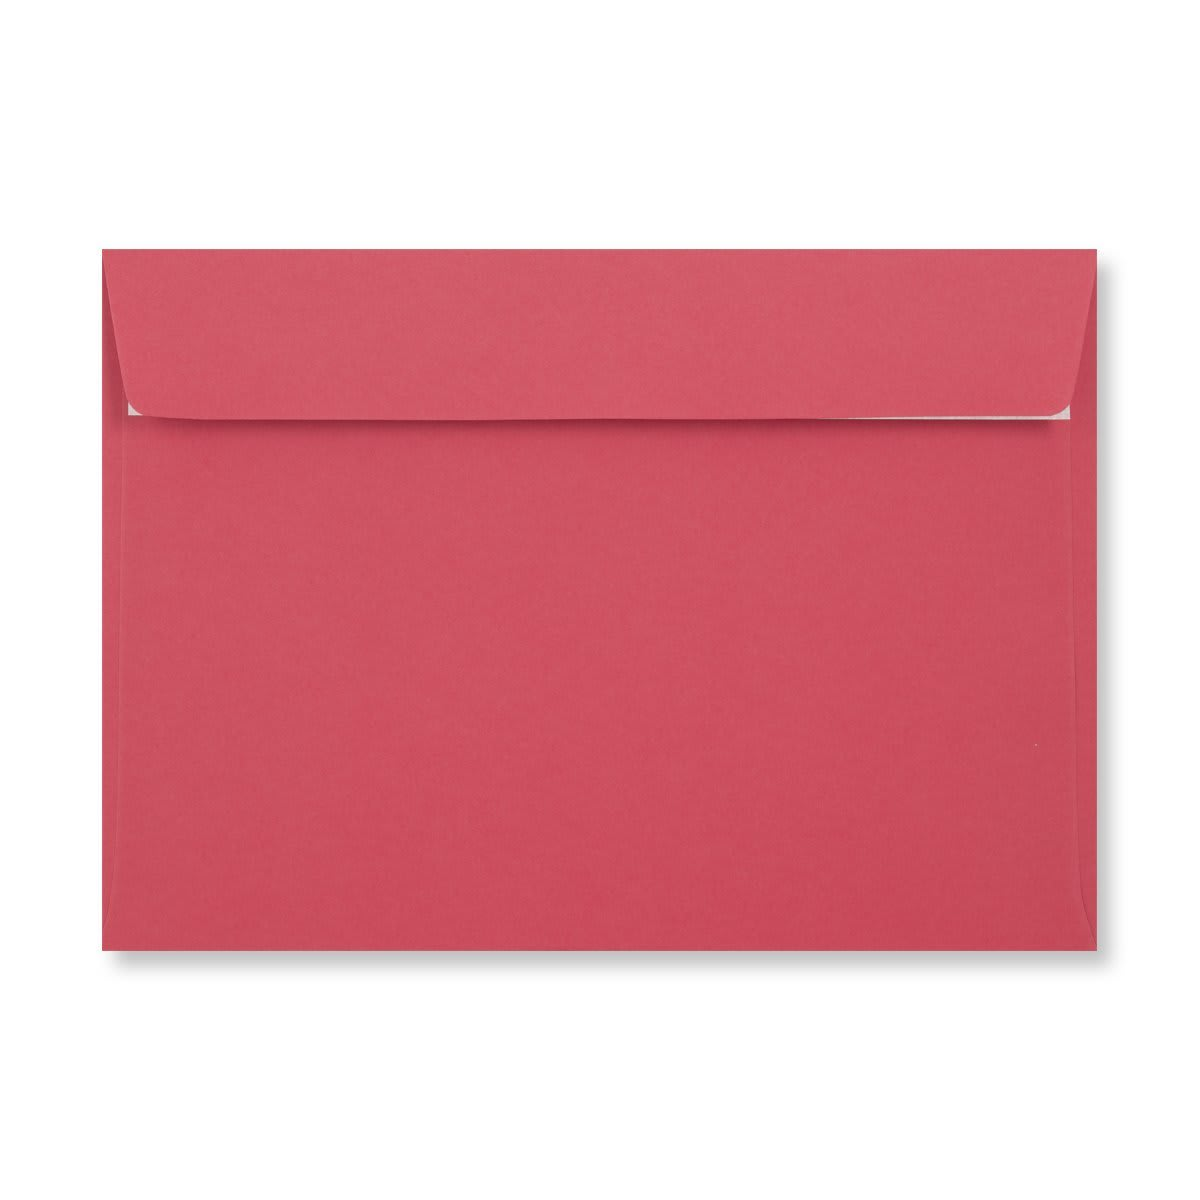 C5 BRIGHT PINK PEEL AND SEAL ENVELOPES